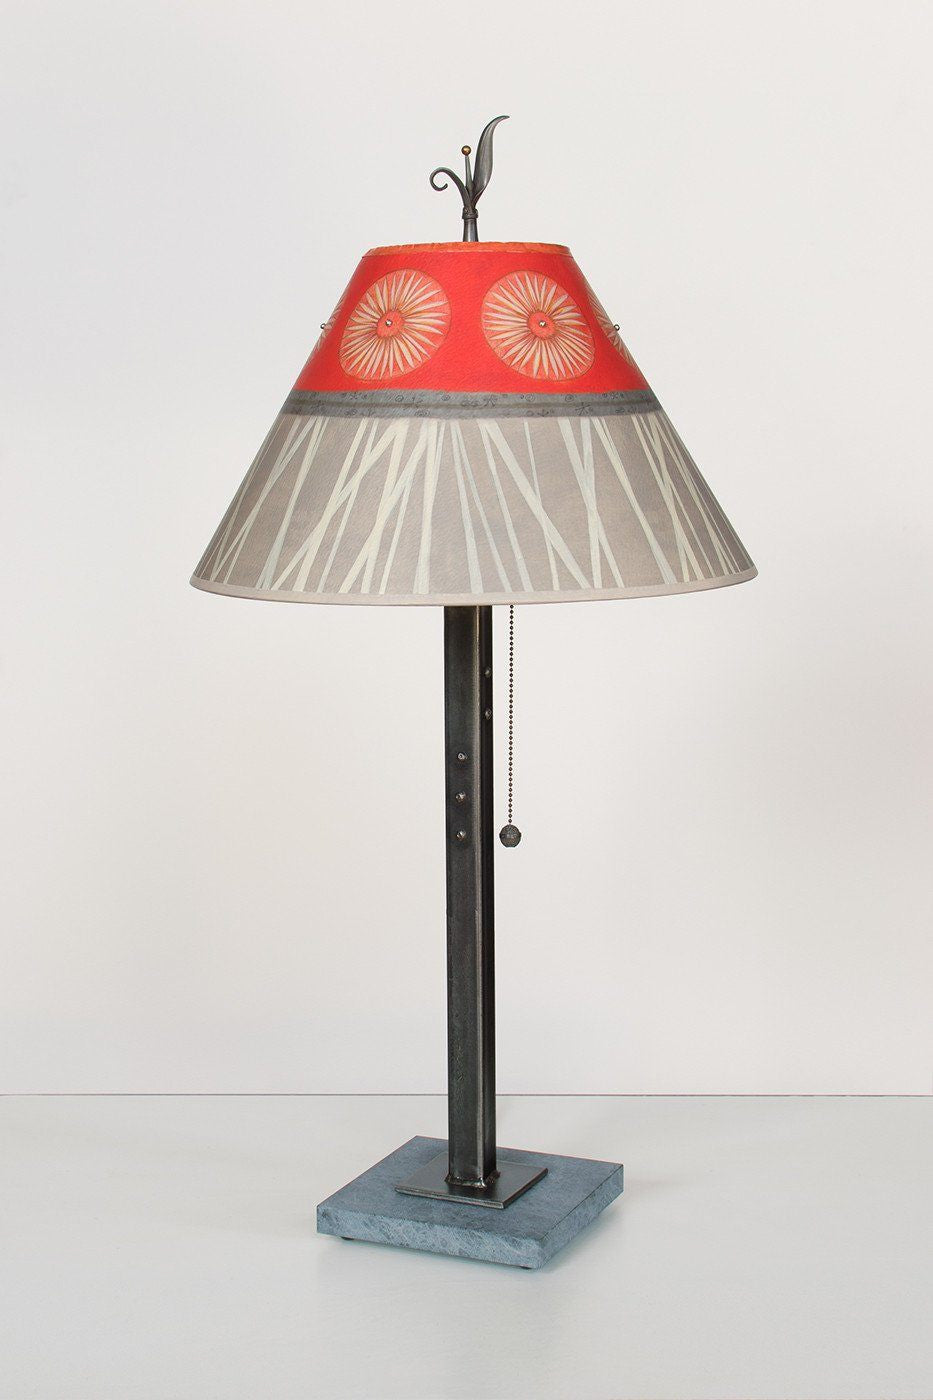 Steel Table Lamp on Marble with Medium Conical Shade in Tang Lit